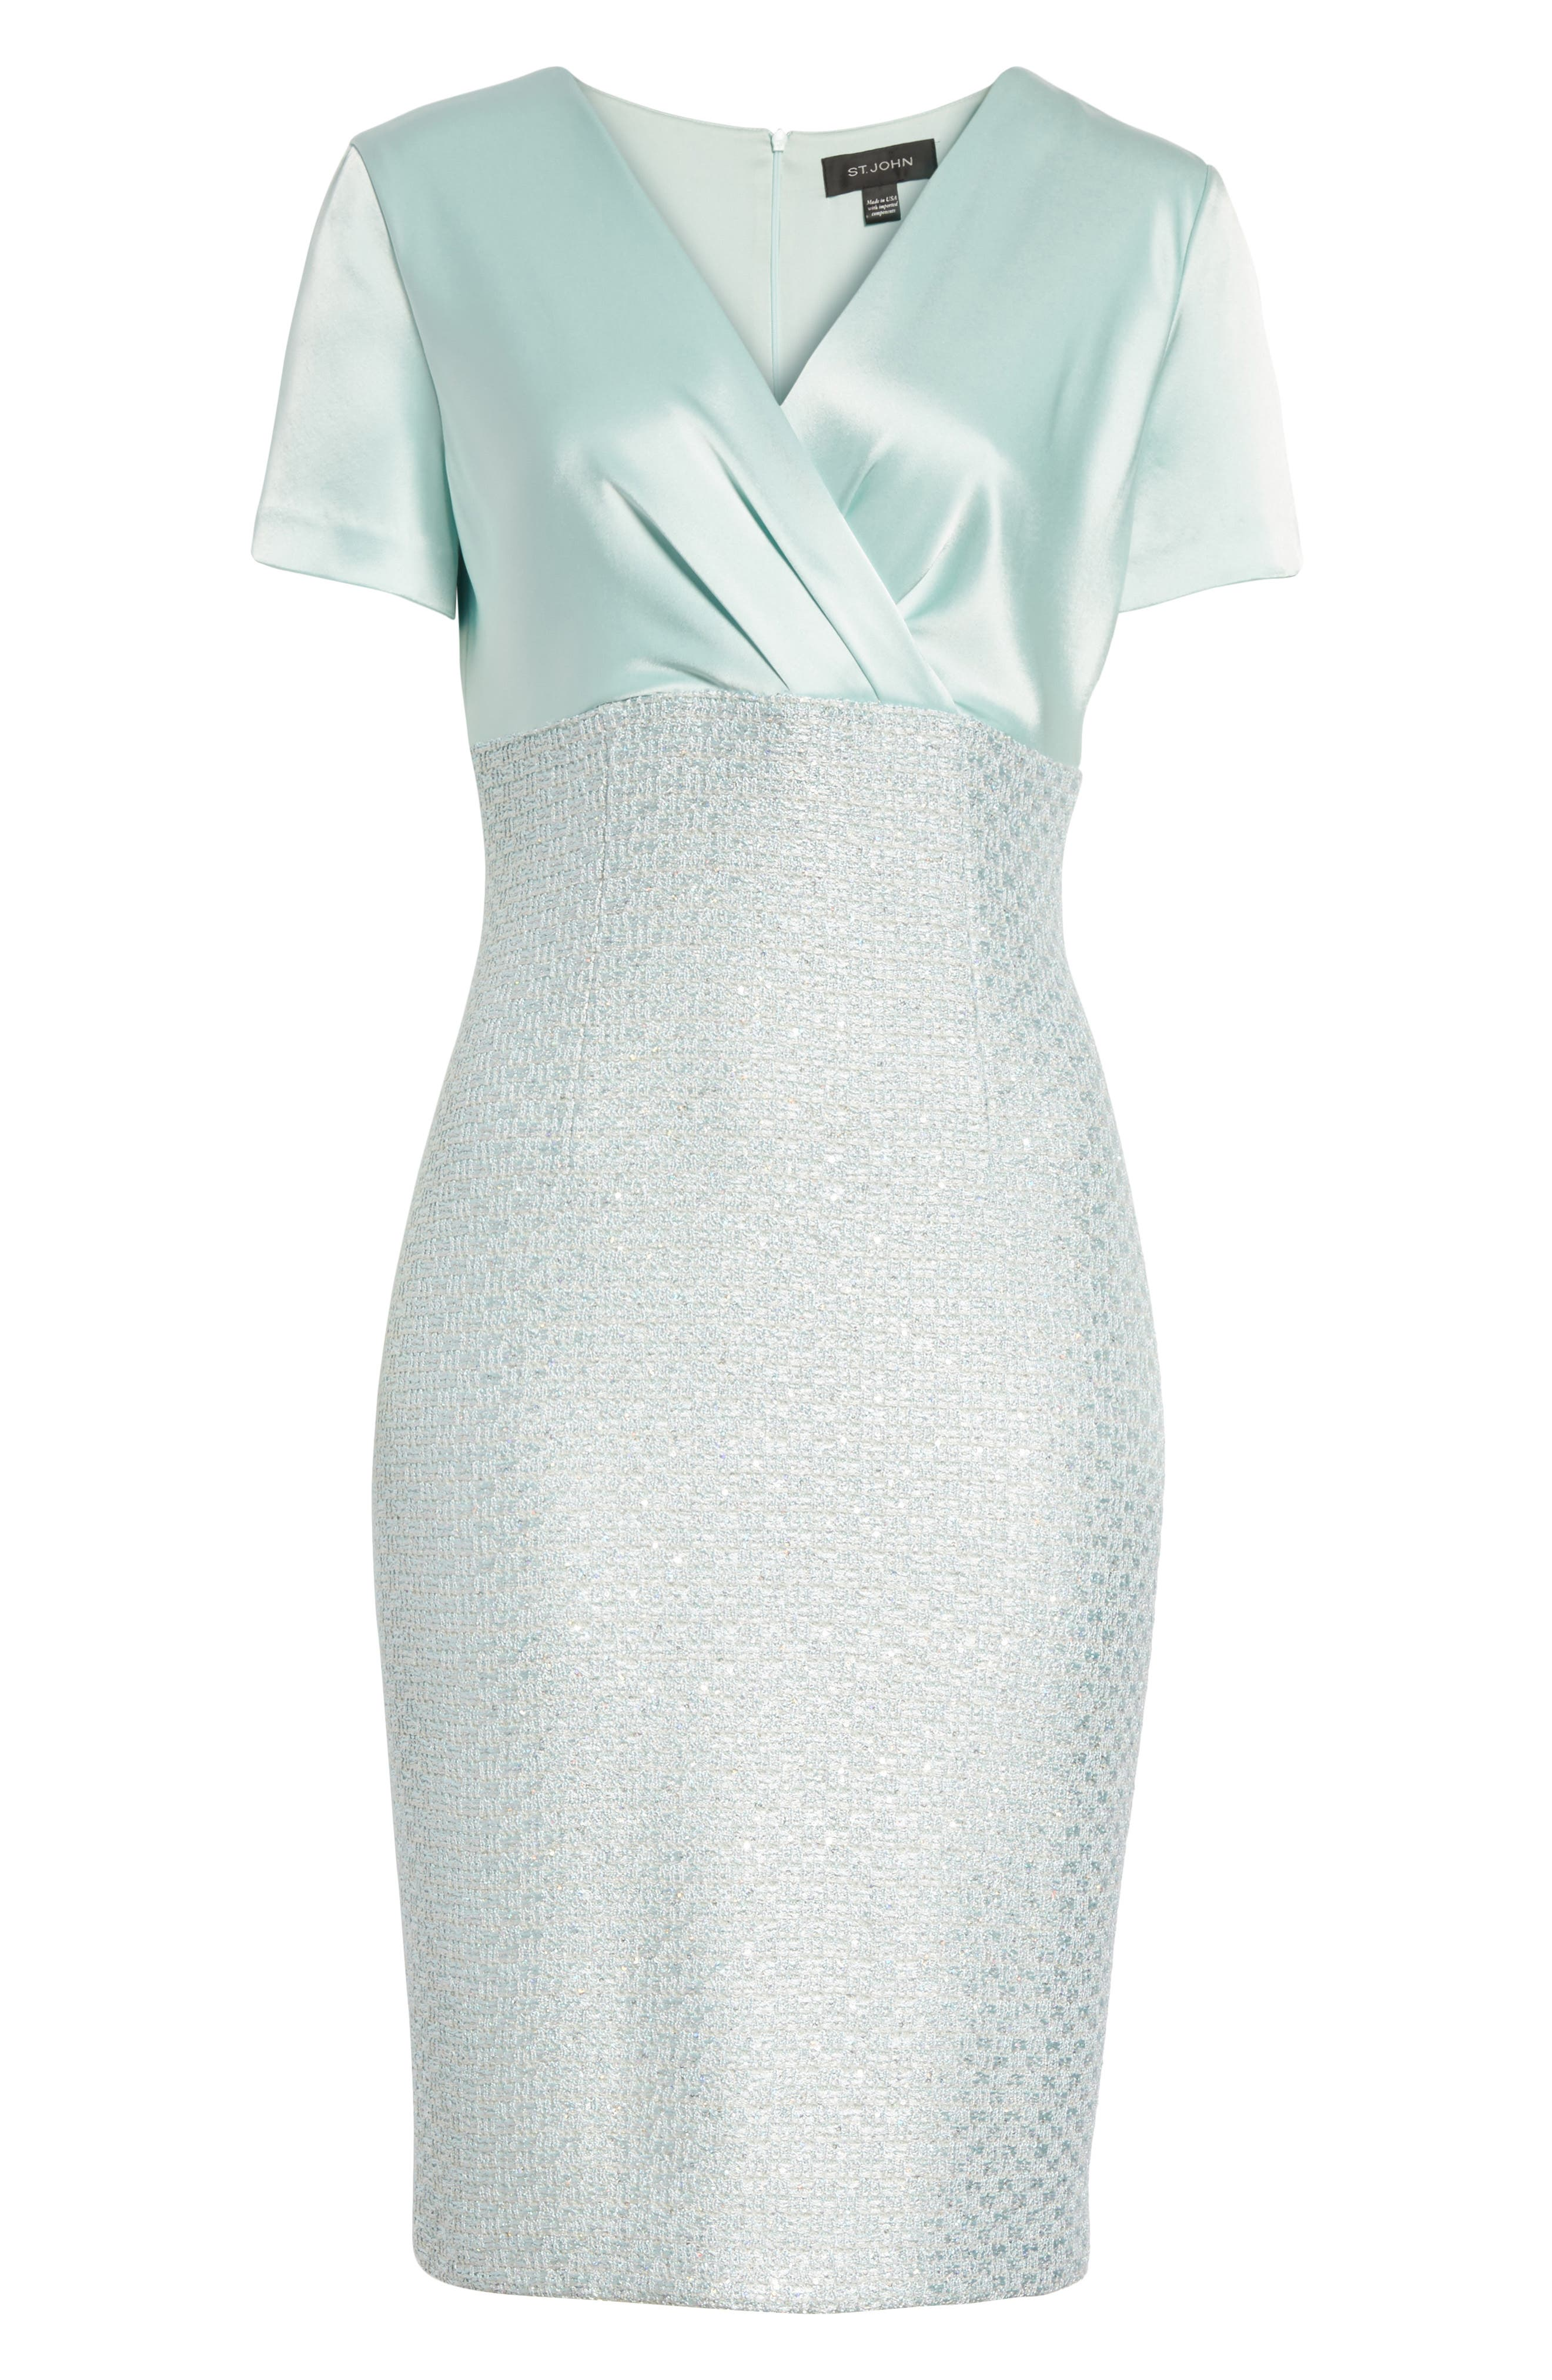 Hansh Satin & Knit Sheath Dress,                             Alternate thumbnail 7, color,                             Mint